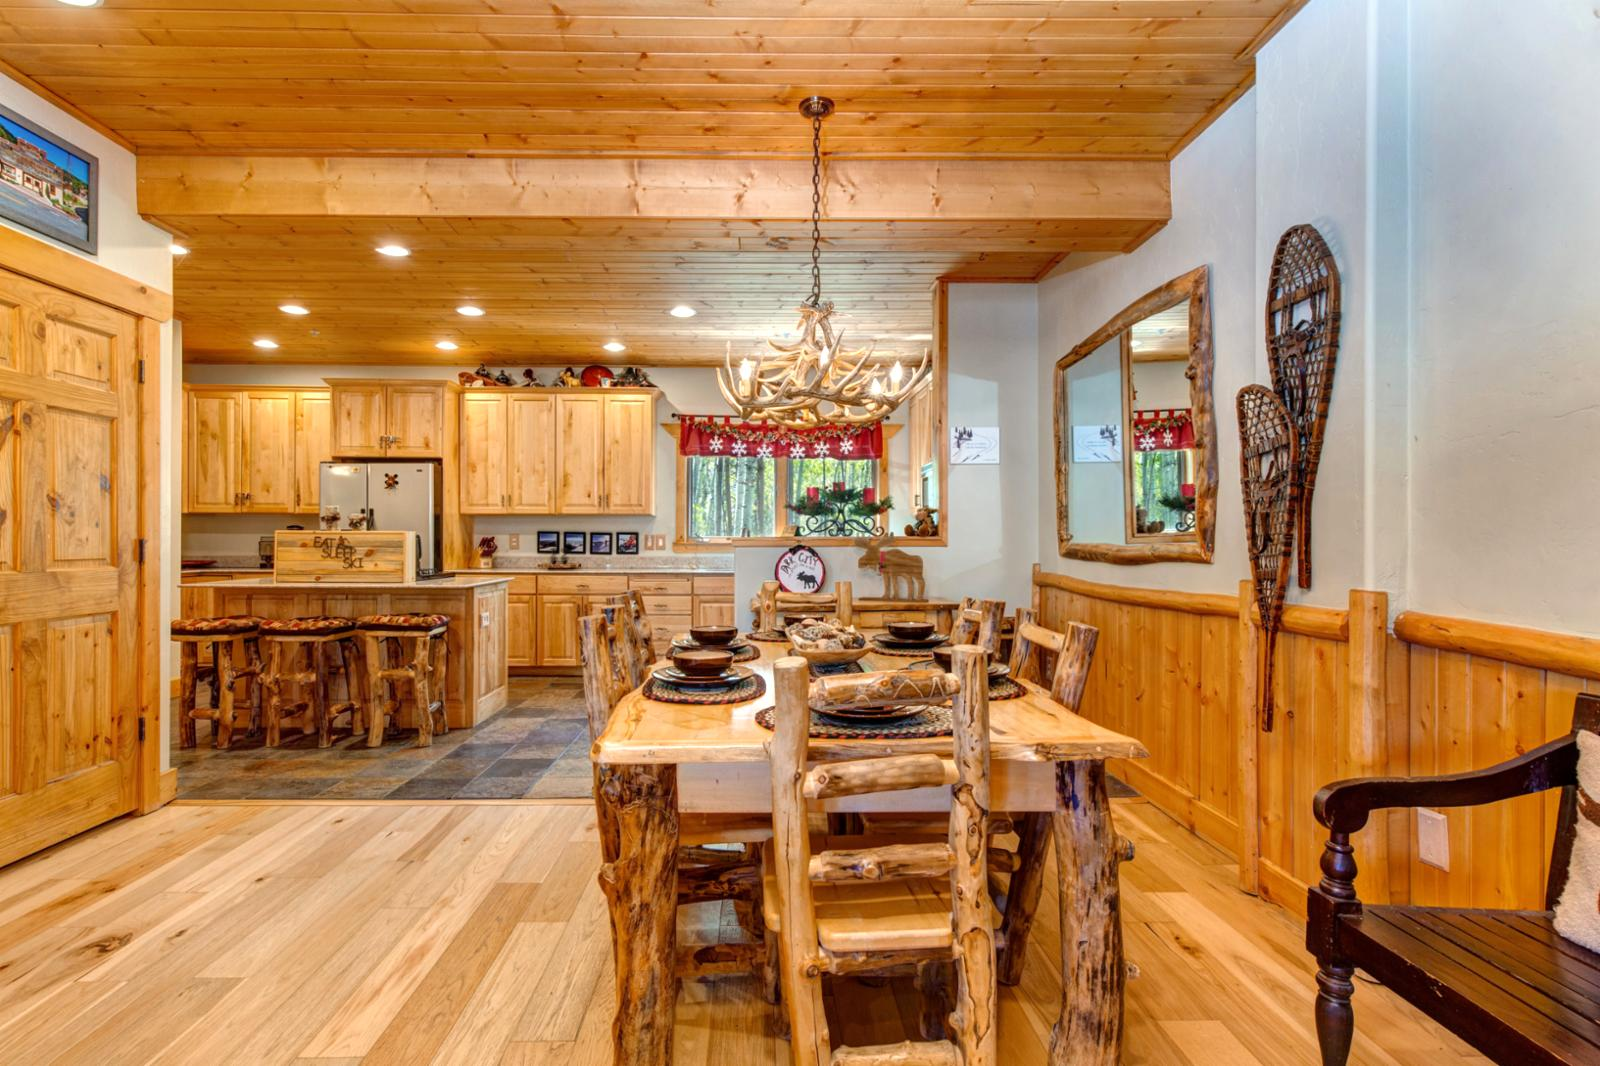 Open floor plan allows sharing your vacation mountain stories together